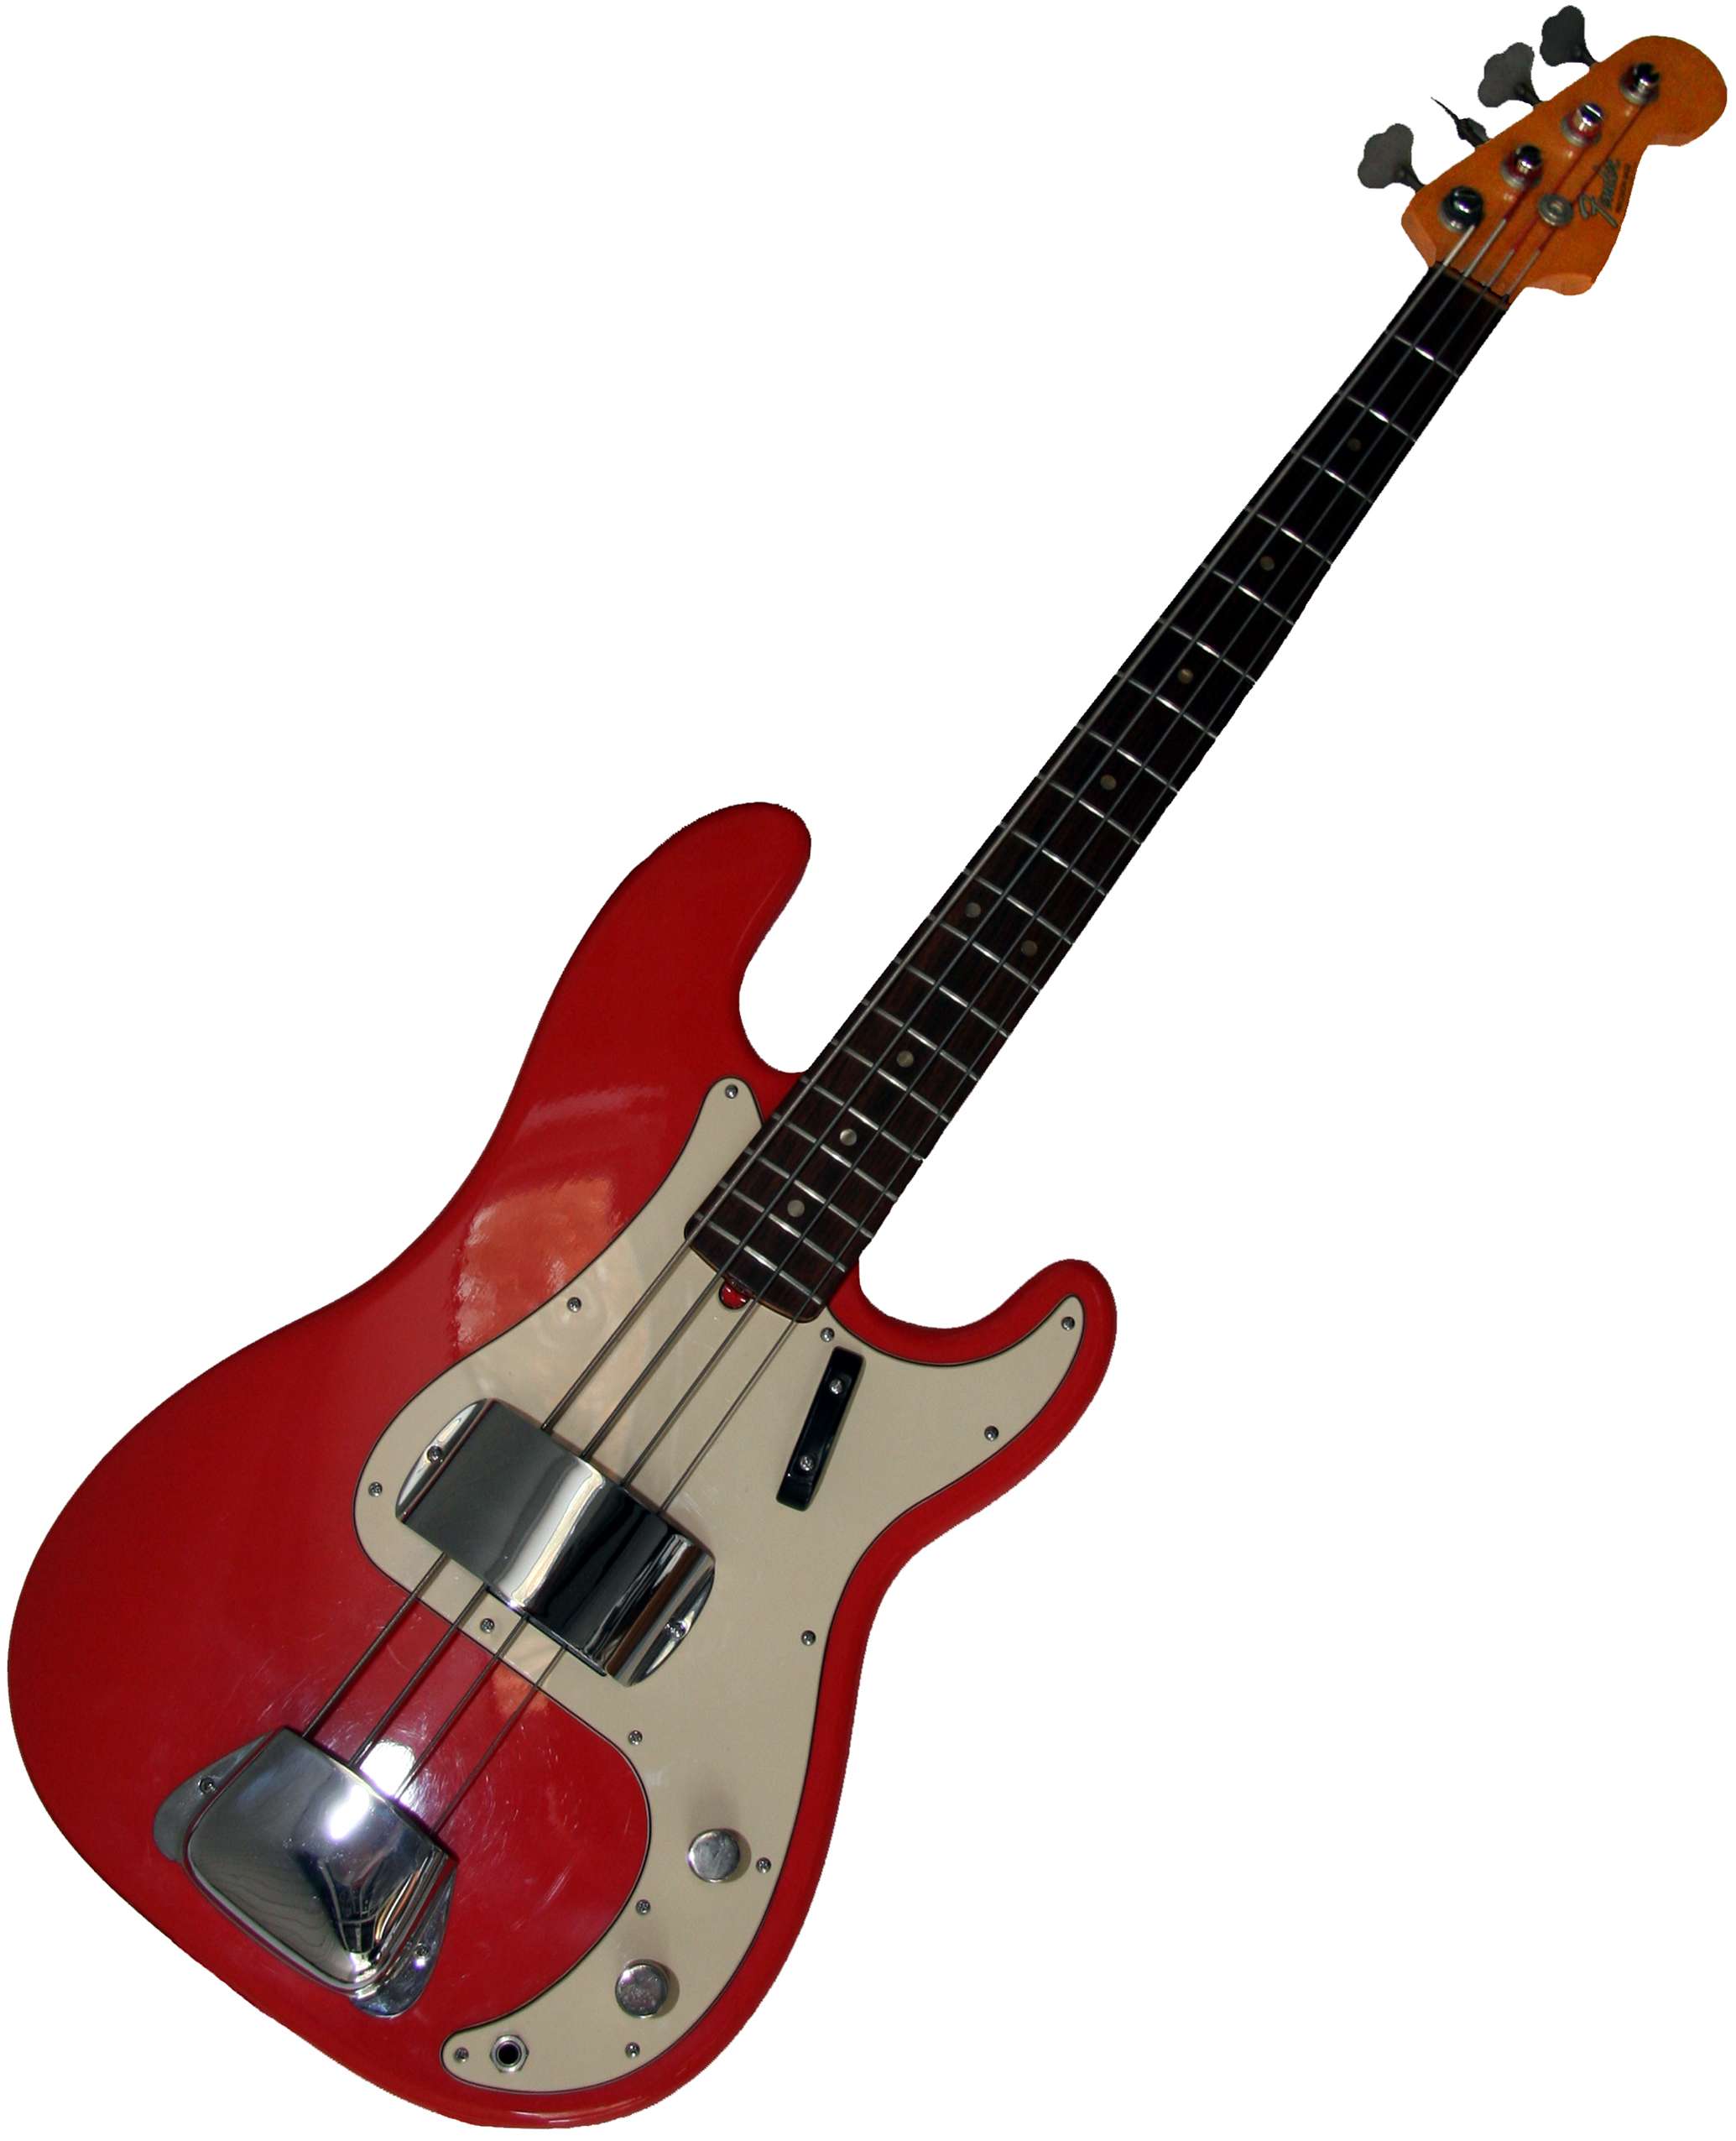 Fender Precision Bass august 1966